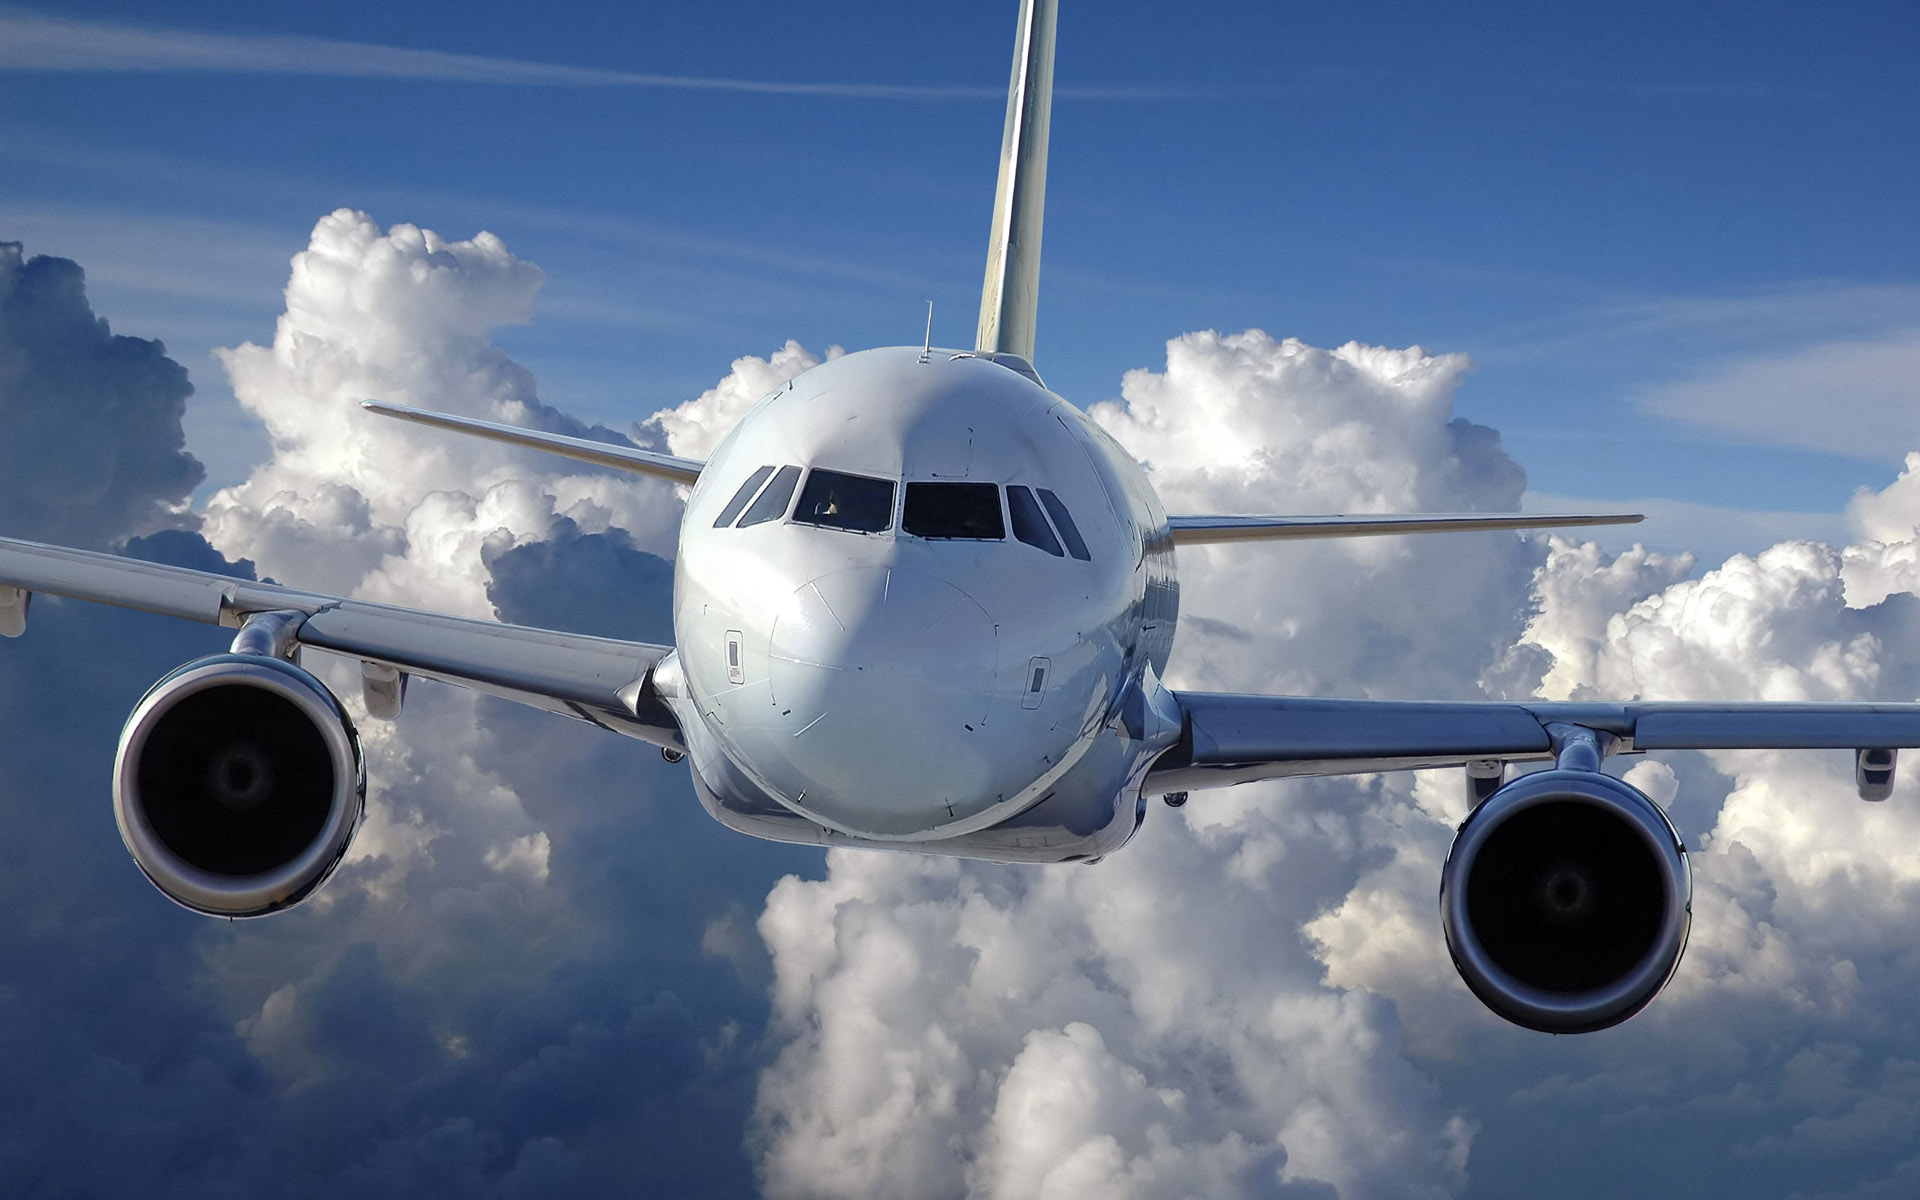 an imaginary or real flight by an aeroplane essays Free essays on conversation between train and aeroplane get help with your writing 1 through 30 one of the real advantages a company has is its people.